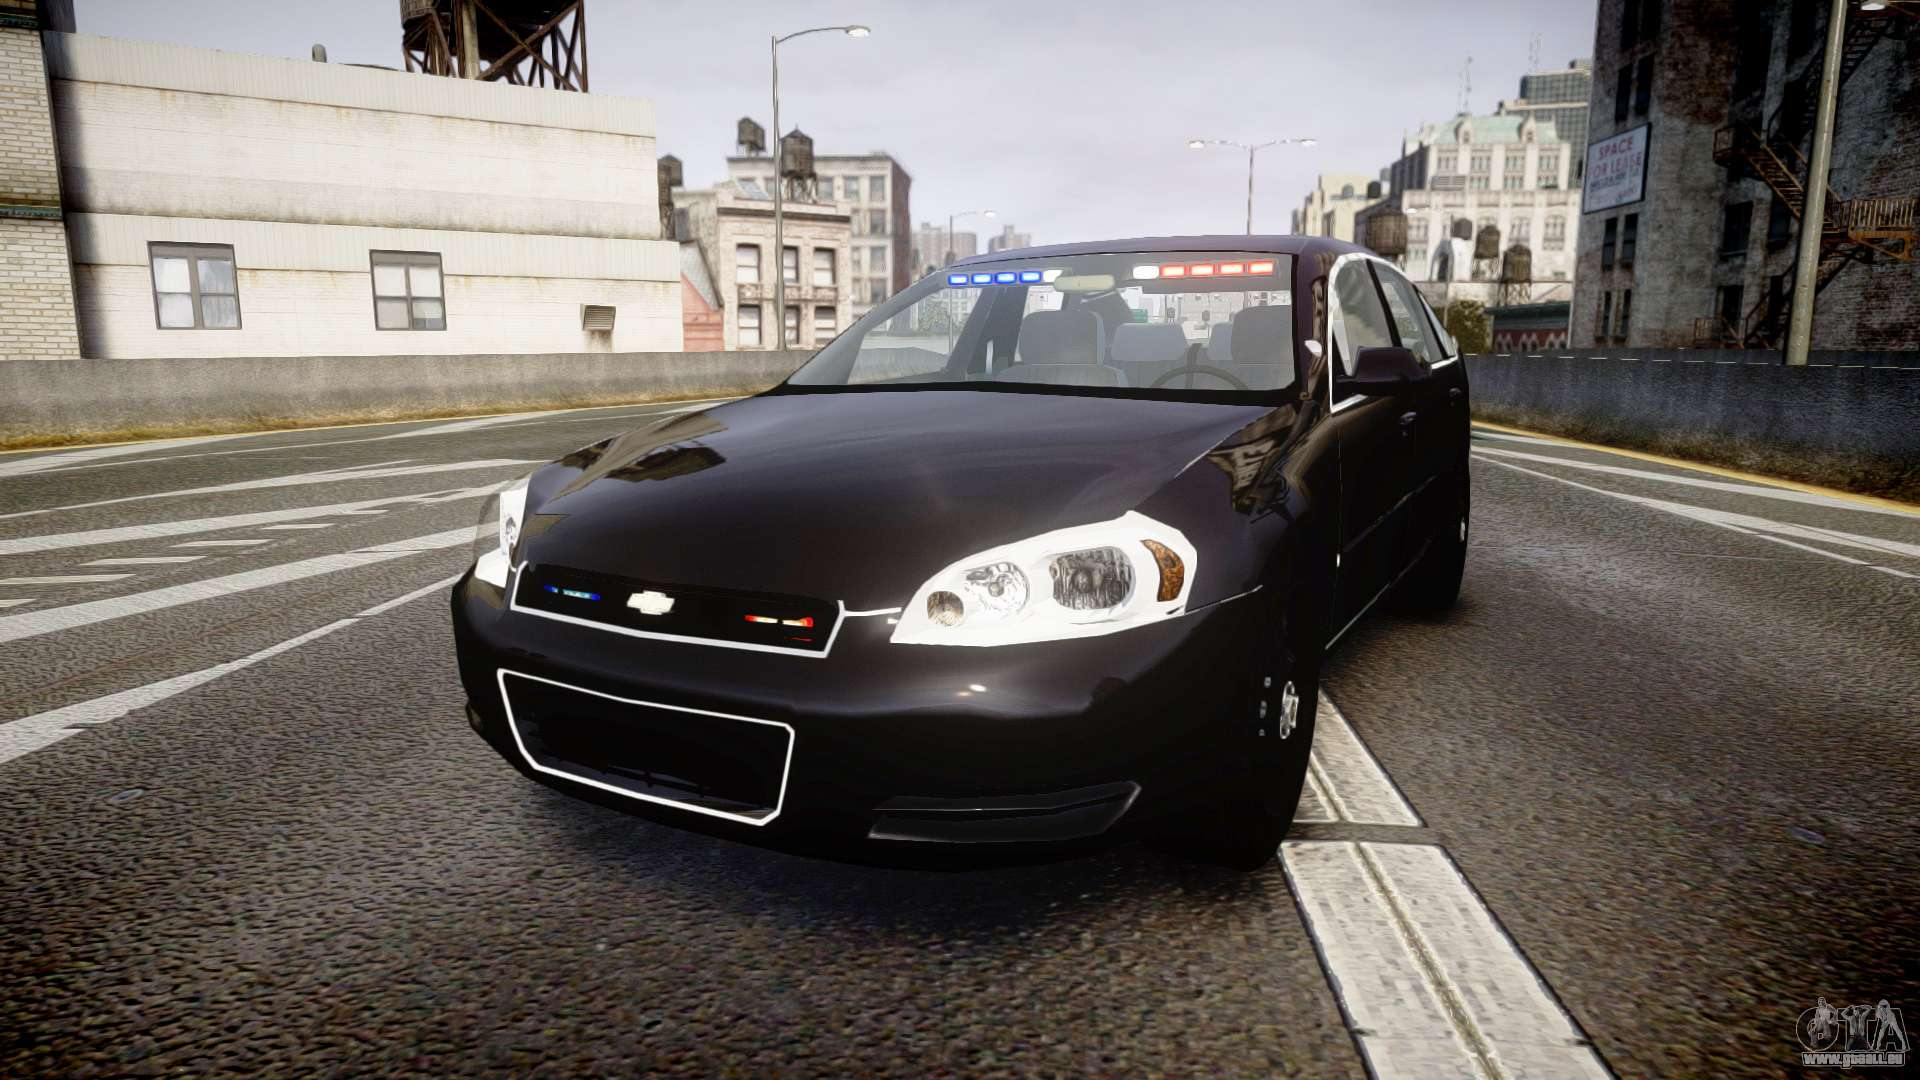 Chevrolet Impala Unmarked Police Els Ntw Pour Gta 4